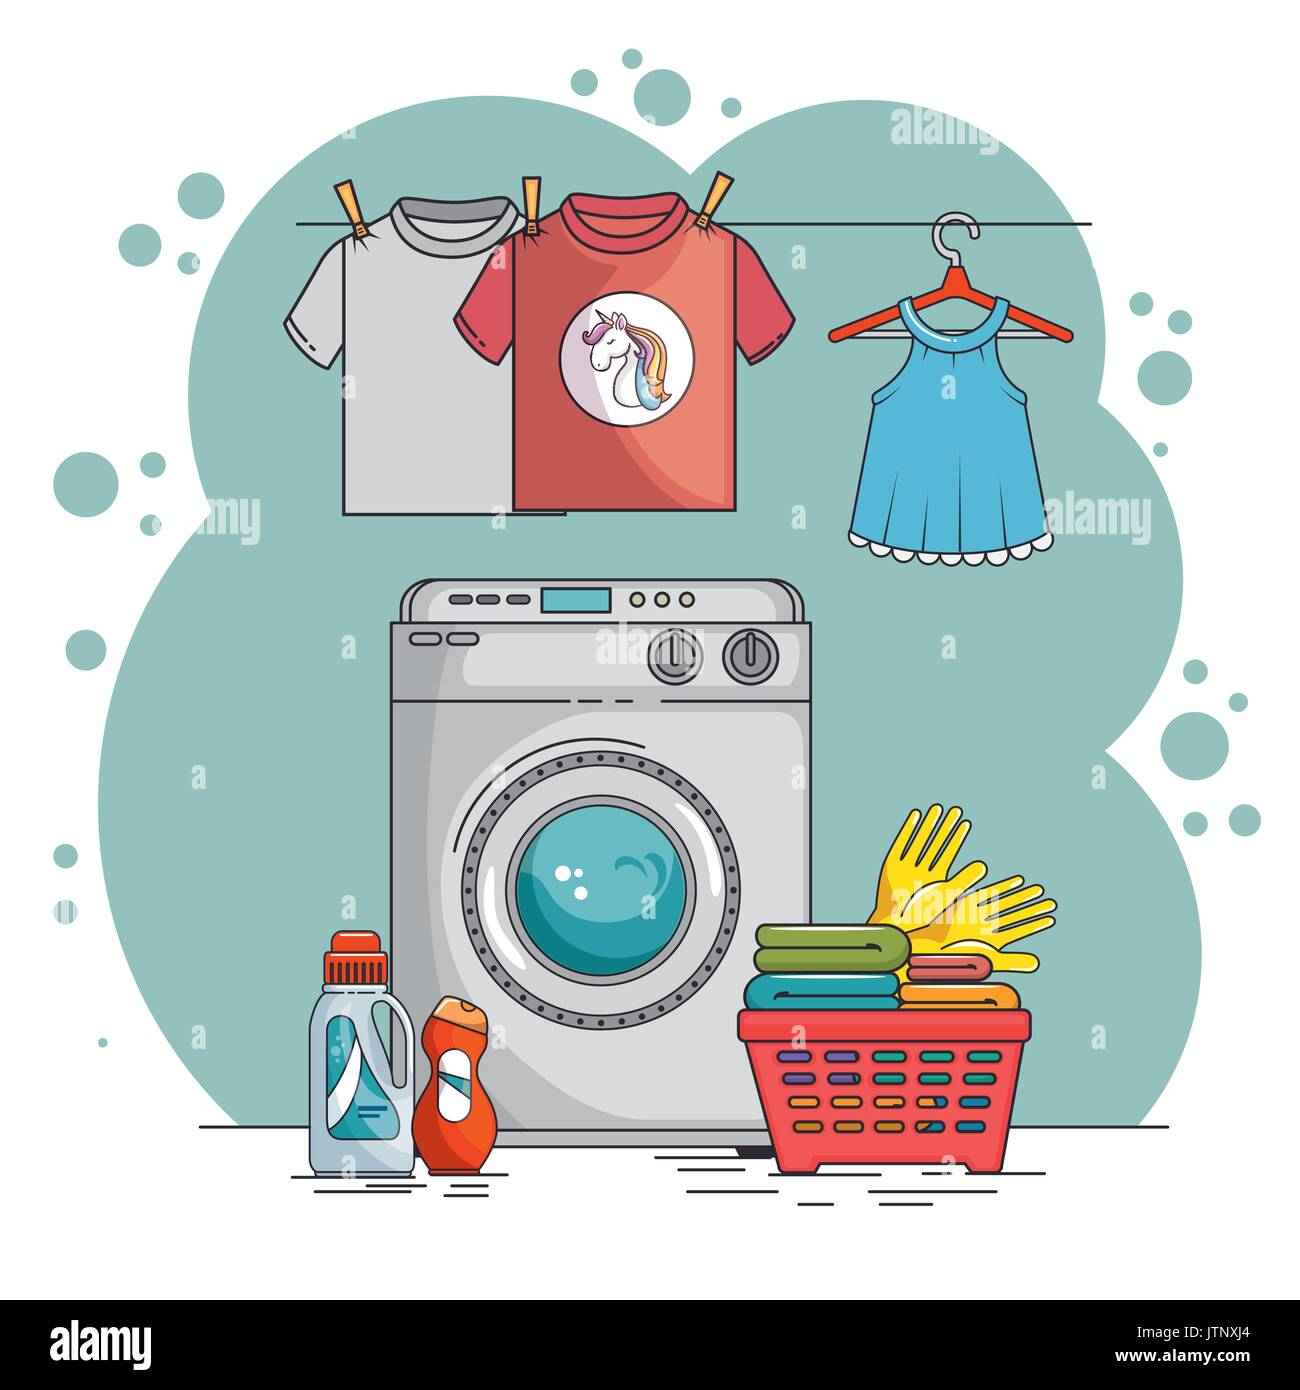 The Laundry Room En Francais